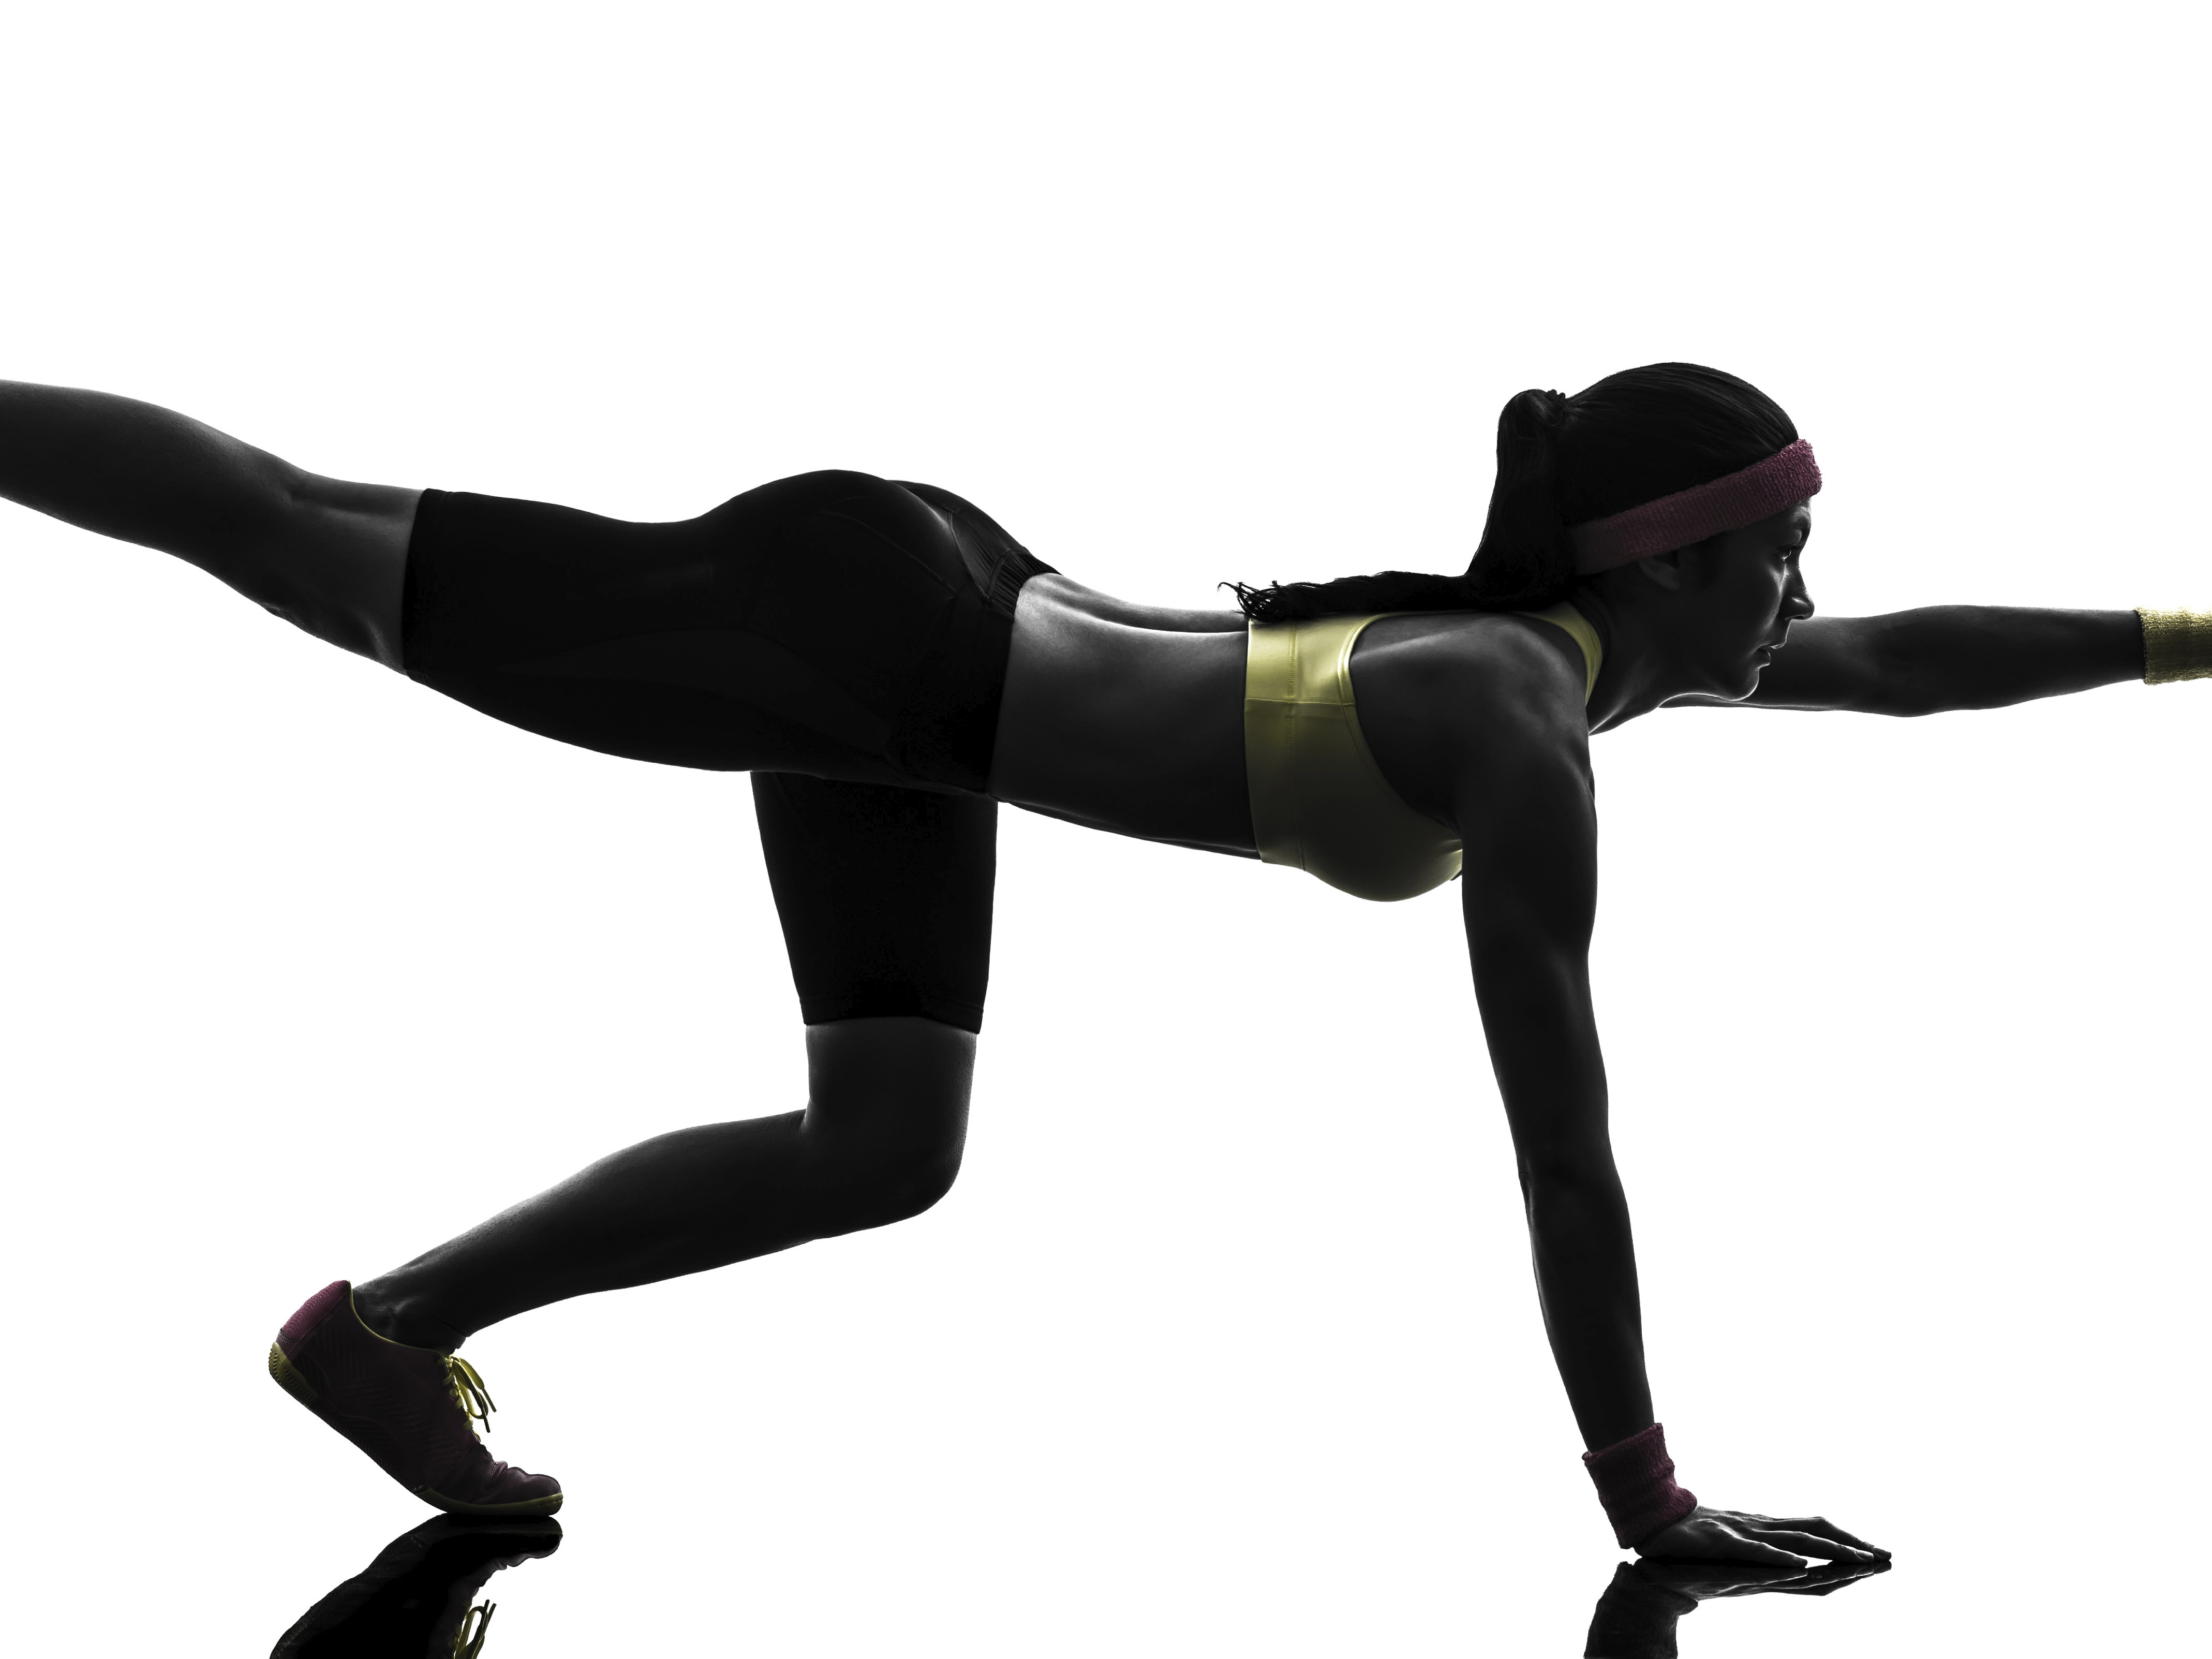 Arm and leg extensions for core stability and strength